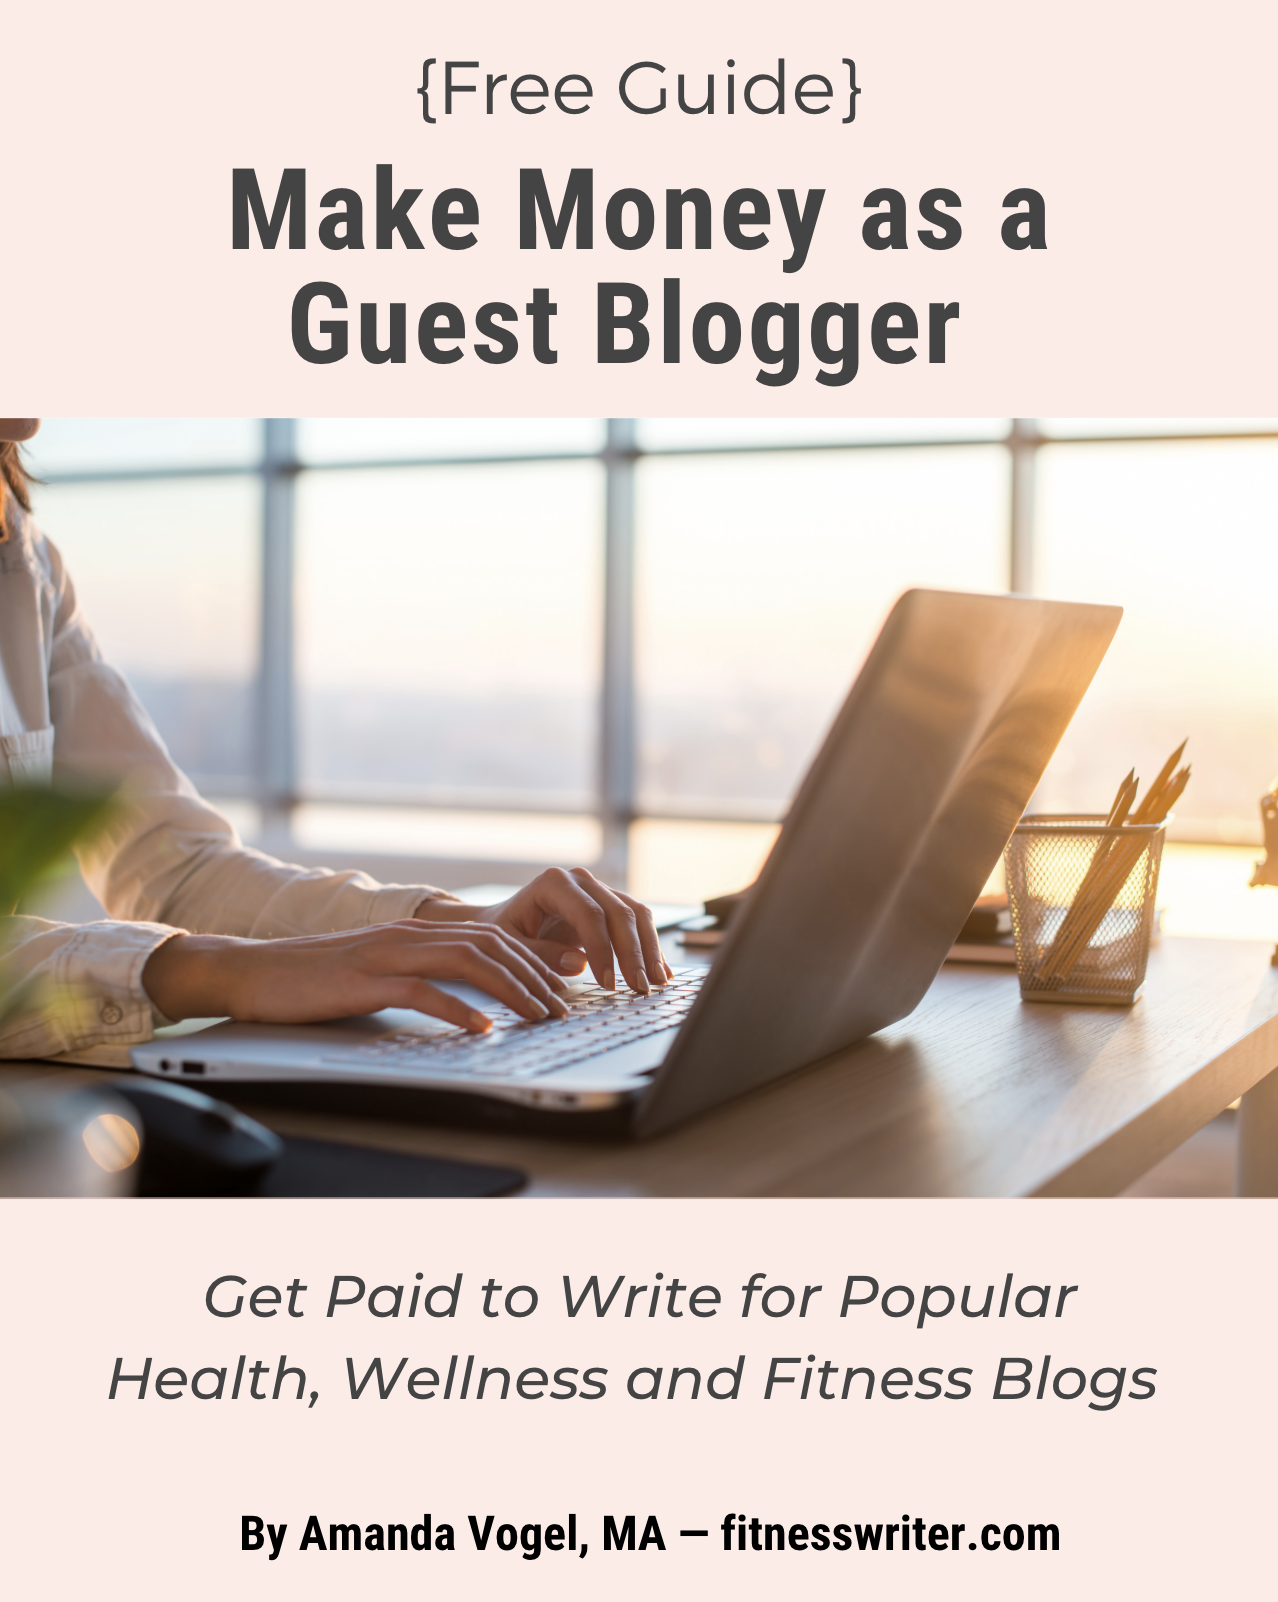 Get Paid to Write for Health, Wellness and Fitness Blogs